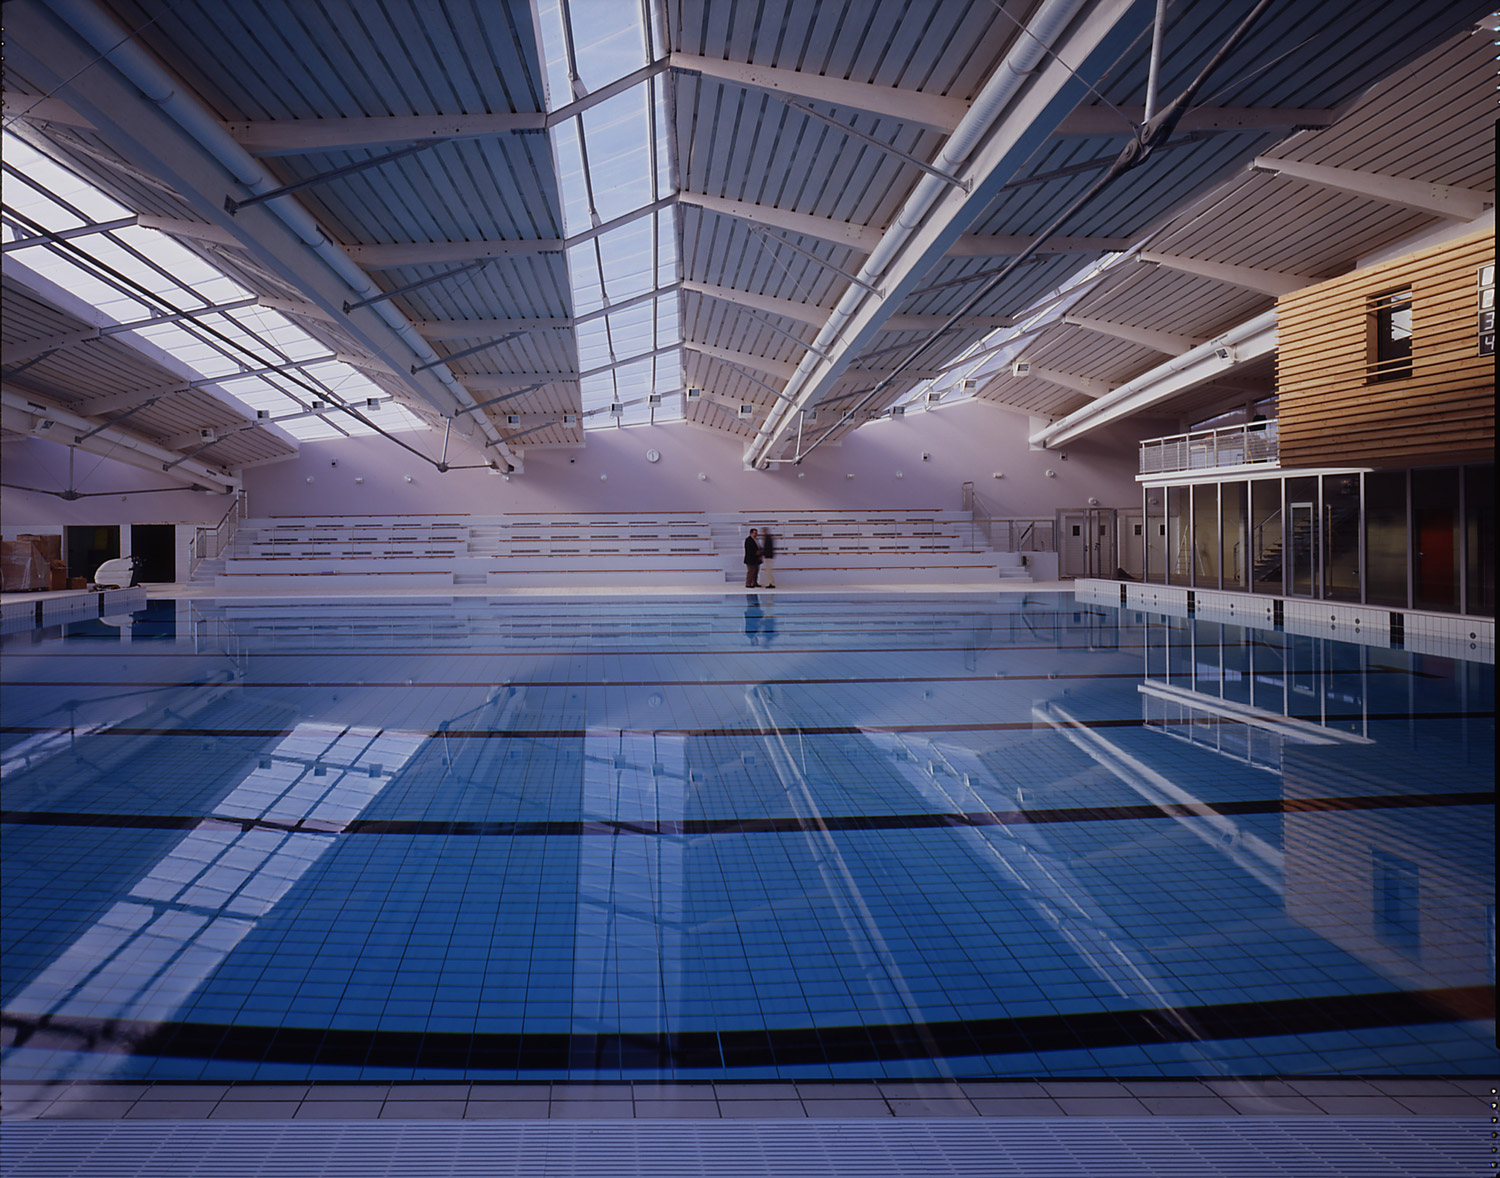 Piscine de viry chatillon lba architecture et ing nierie for Chatillon piscine